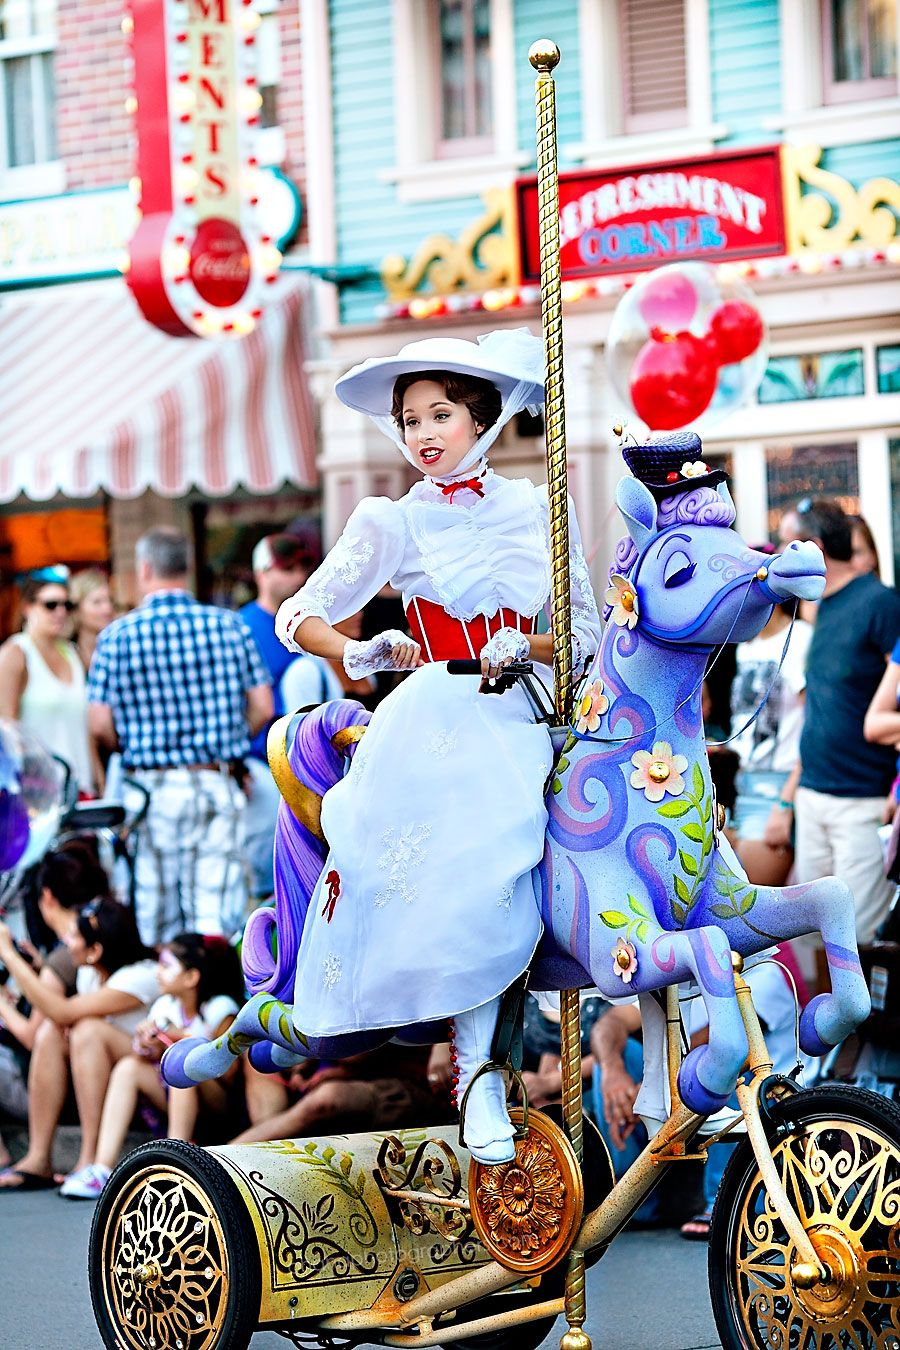 Disneyland Mickey's Soundsational Parade Mary Poppins #disneyland #marypoppins